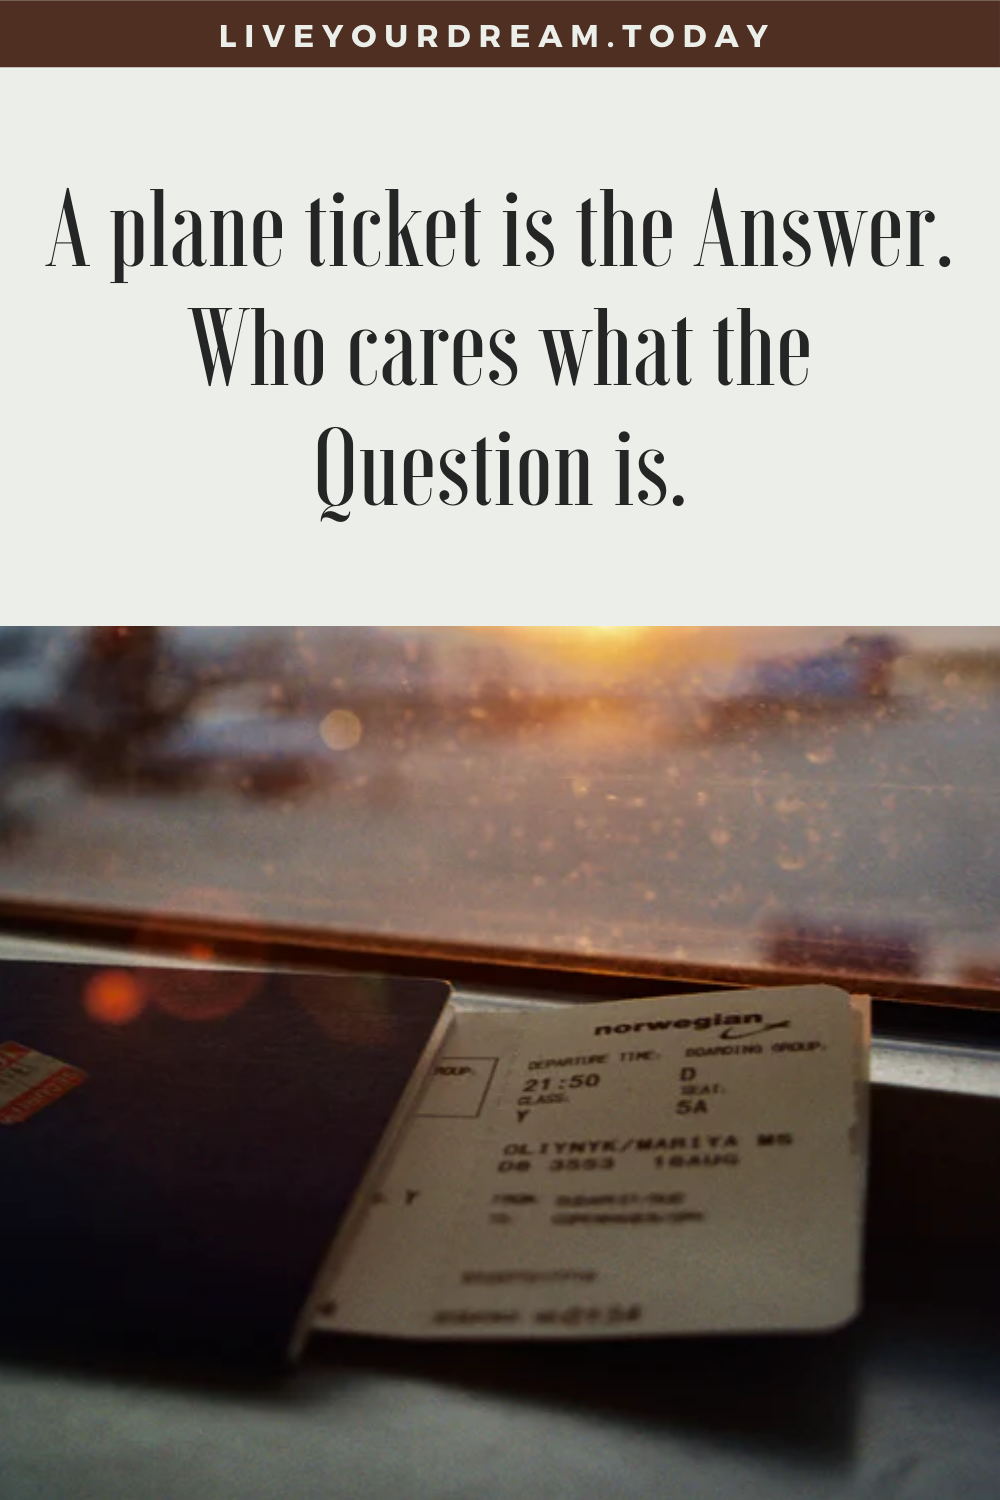 funny travel quote: plane ticket is the answer